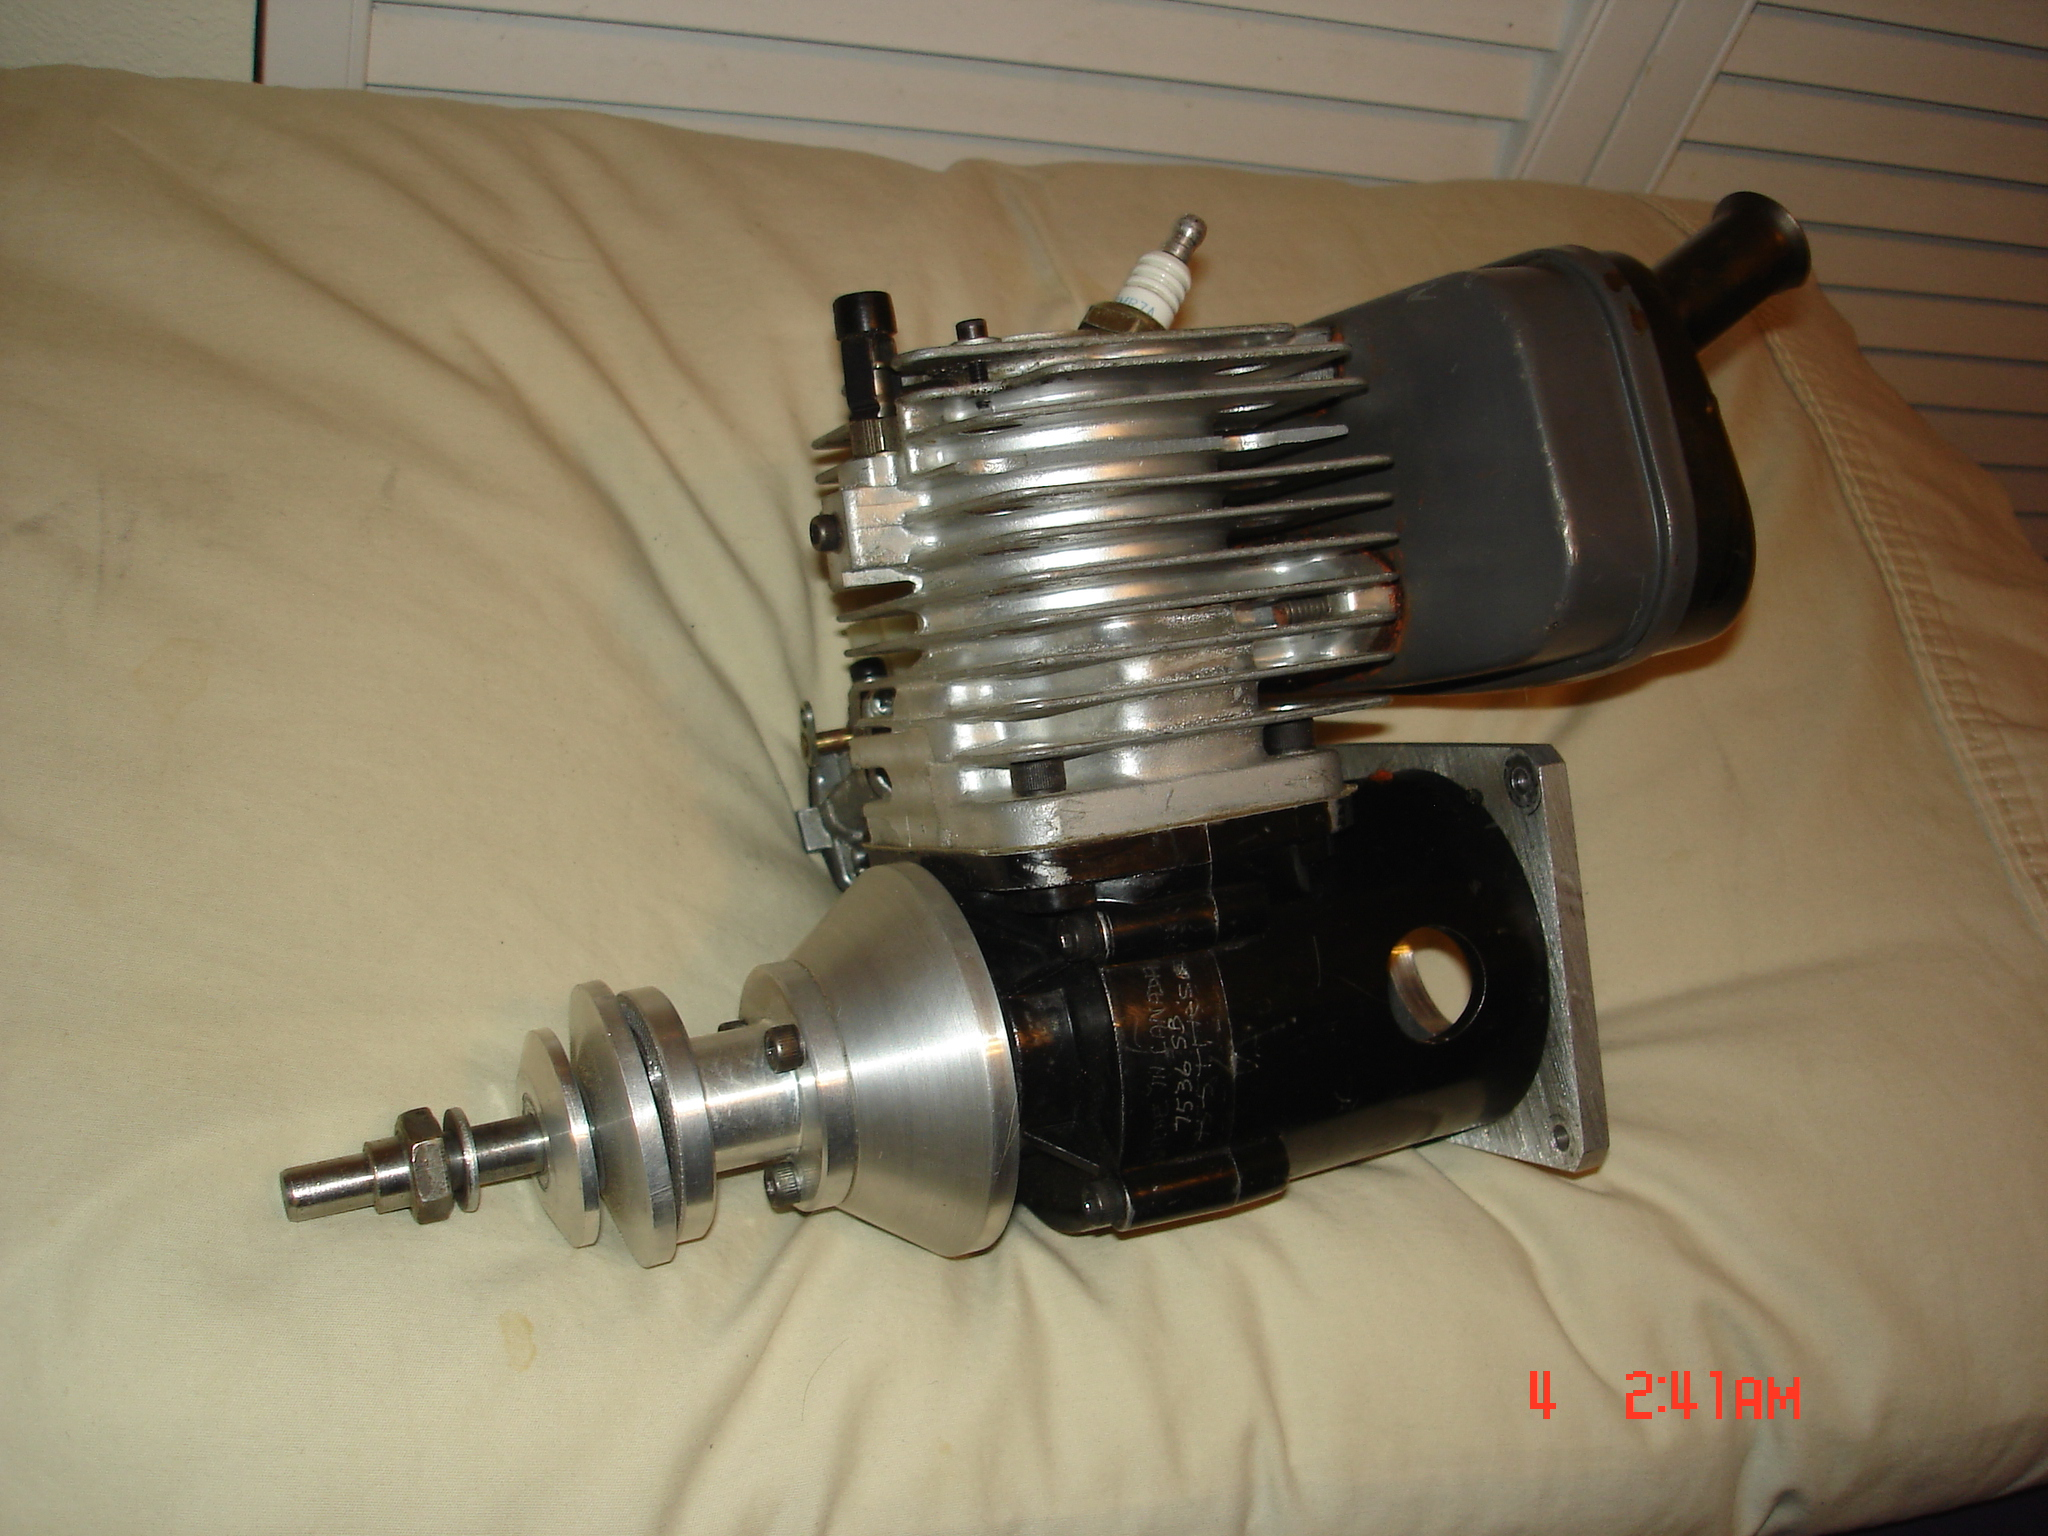 Click image for larger version  Name:Van engines 011.JPG Views:42 Size:1.25 MB ID:1970645